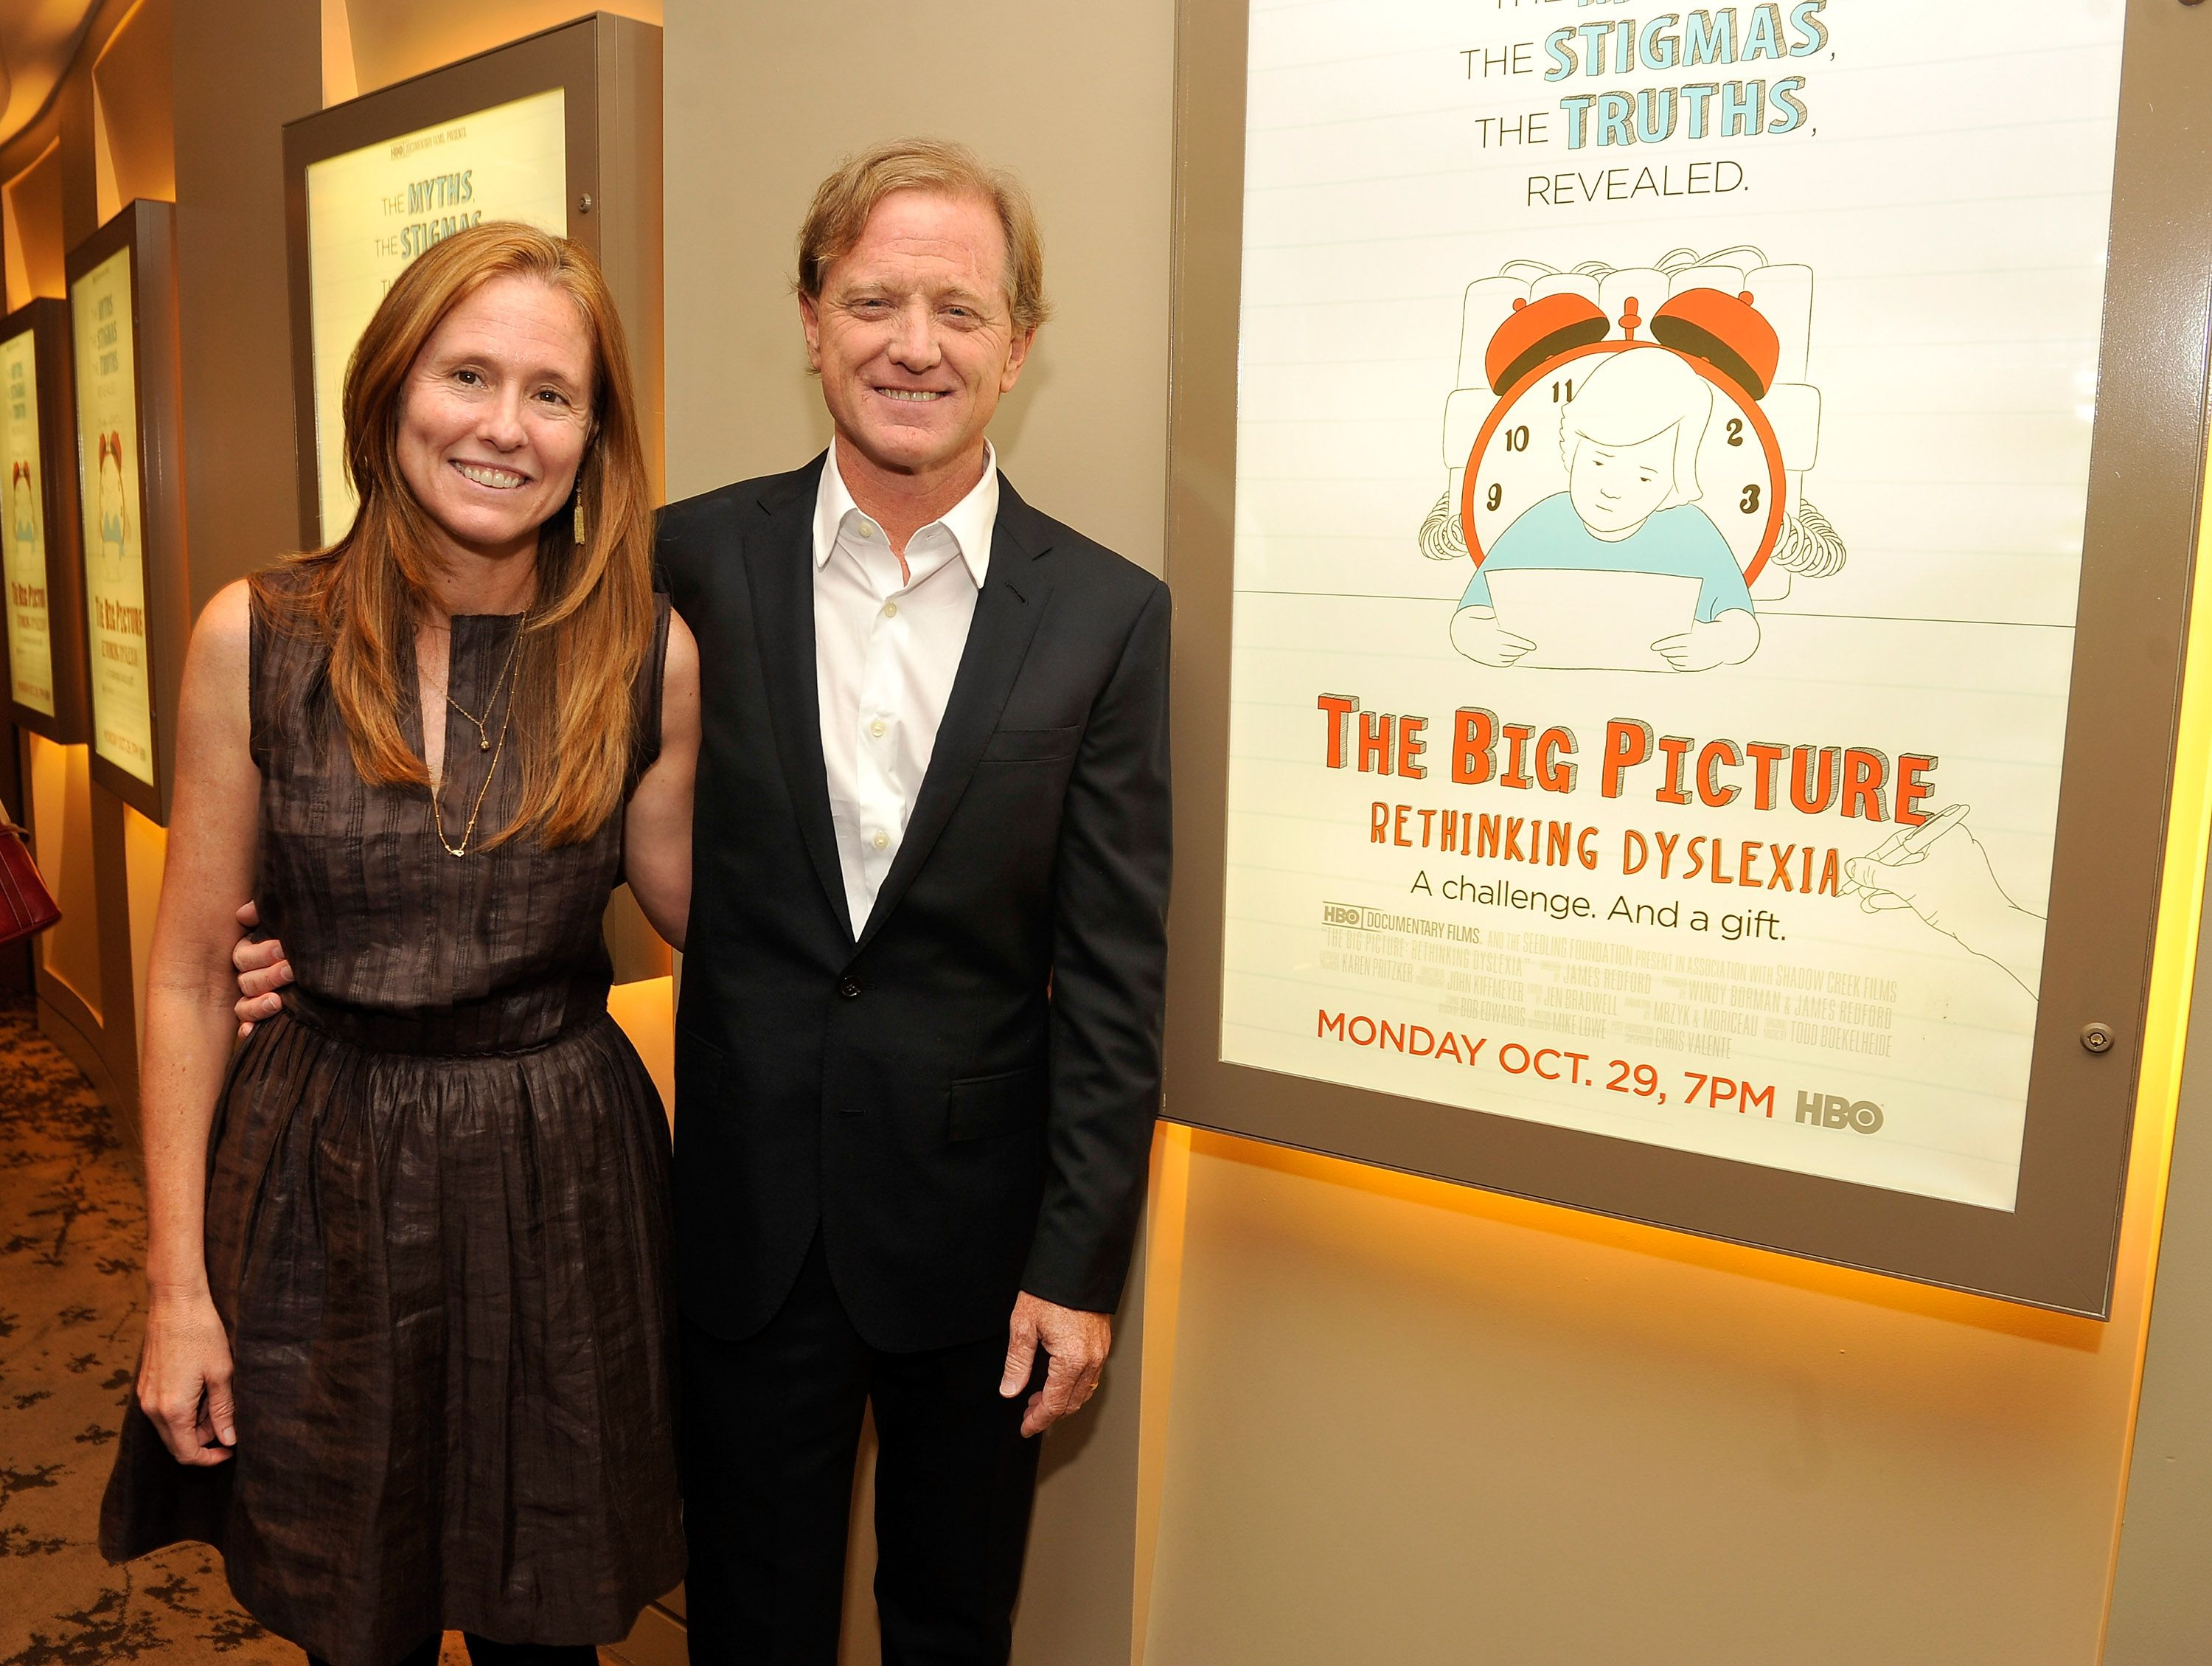 """Kyle Redford and director James Redford at HBO's New York Premiere of """"The Big Picture: Rethinking Dyslexia"""" on October 25, 2012   Photo: Getty Images"""